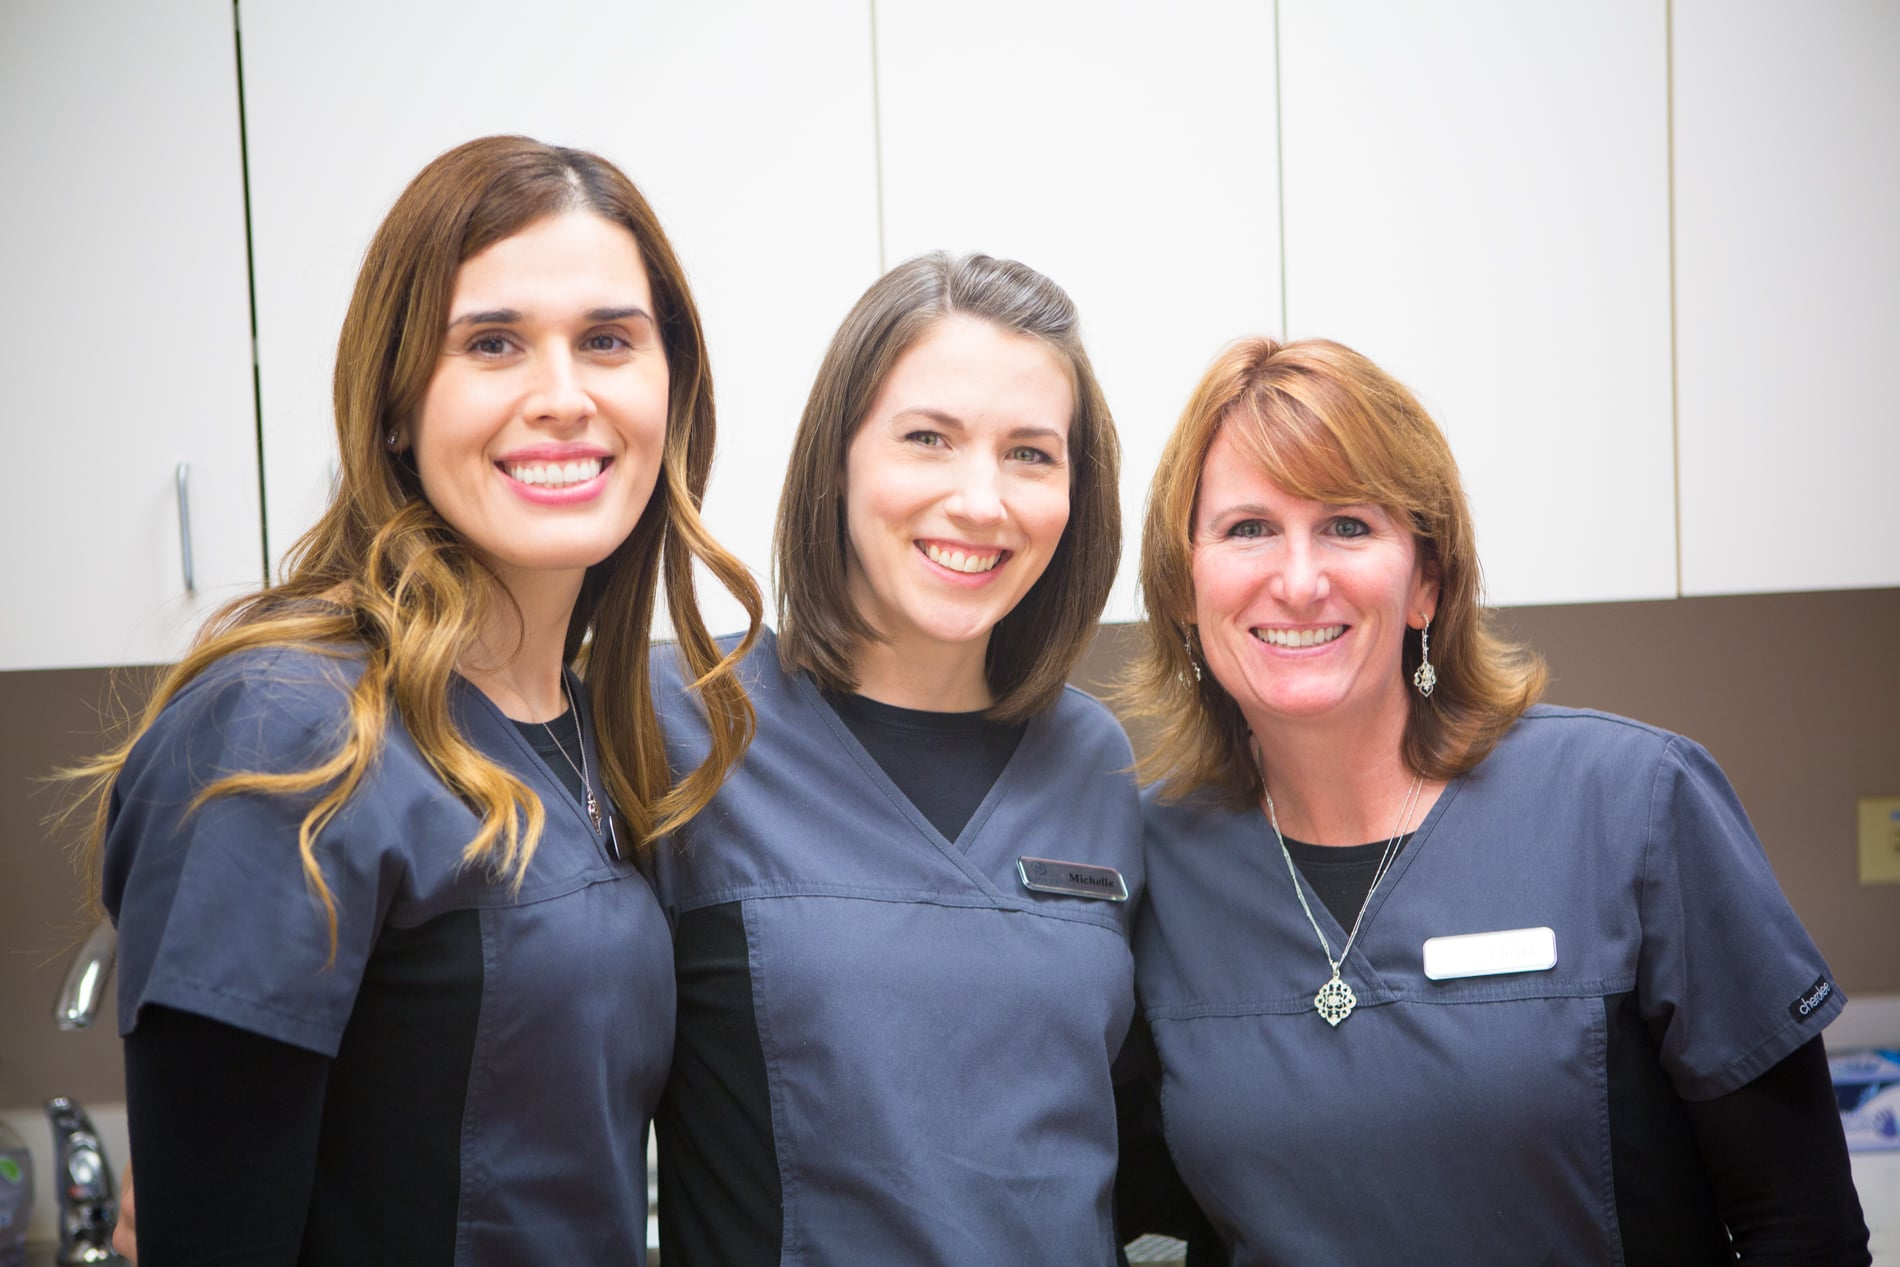 Nudera-Orthodontics-South-Elgin-Elmwood-Braces-22-of-67  - Braces and Invisalign in South Elgin and Elmwood Park, IL - Nudera Orthodontics